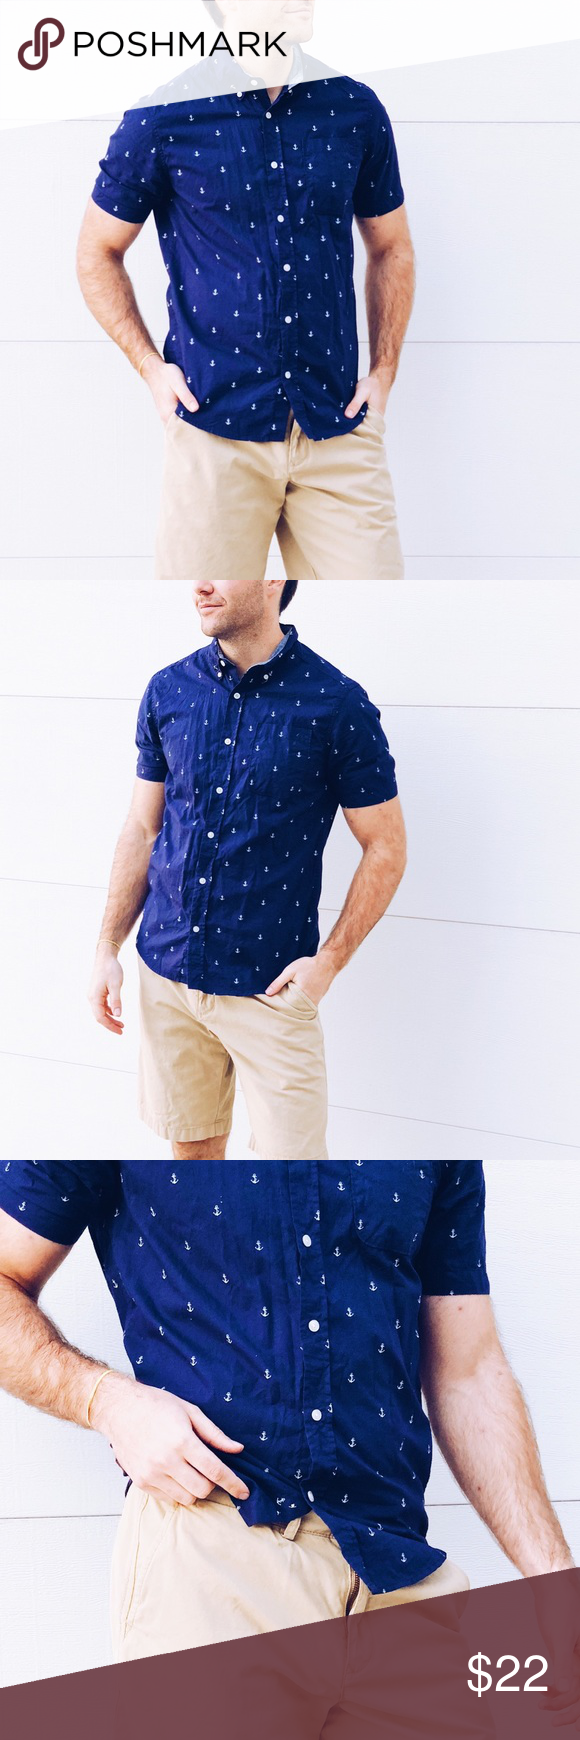 75251beb0281 Navy Blue Anchor Short Sleeve Button Down ✓️The perfect casual shirt! Men s  Classic Fit Carbon Short Sleeve Button Down. ✓️Size Medium. 100% cotton.